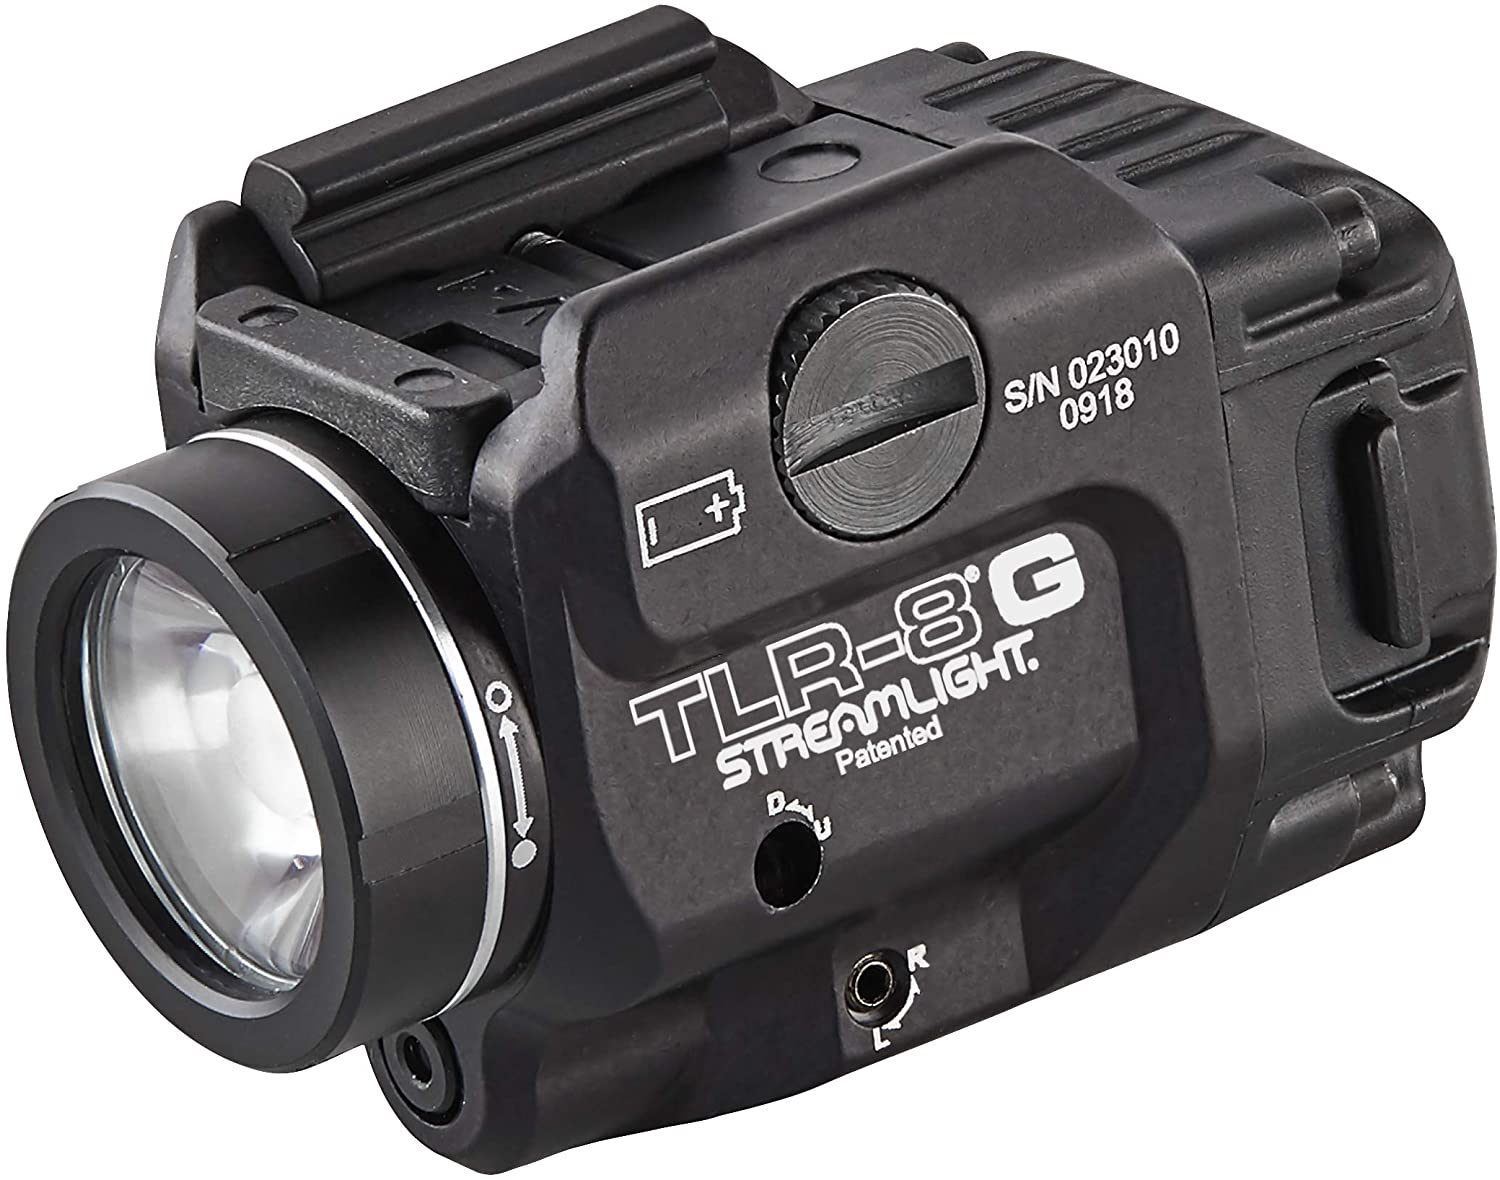 Streamlight 69430 TLR-8G with Rail Locating Keys & CR123A Lithium Battery - 500 Lumens